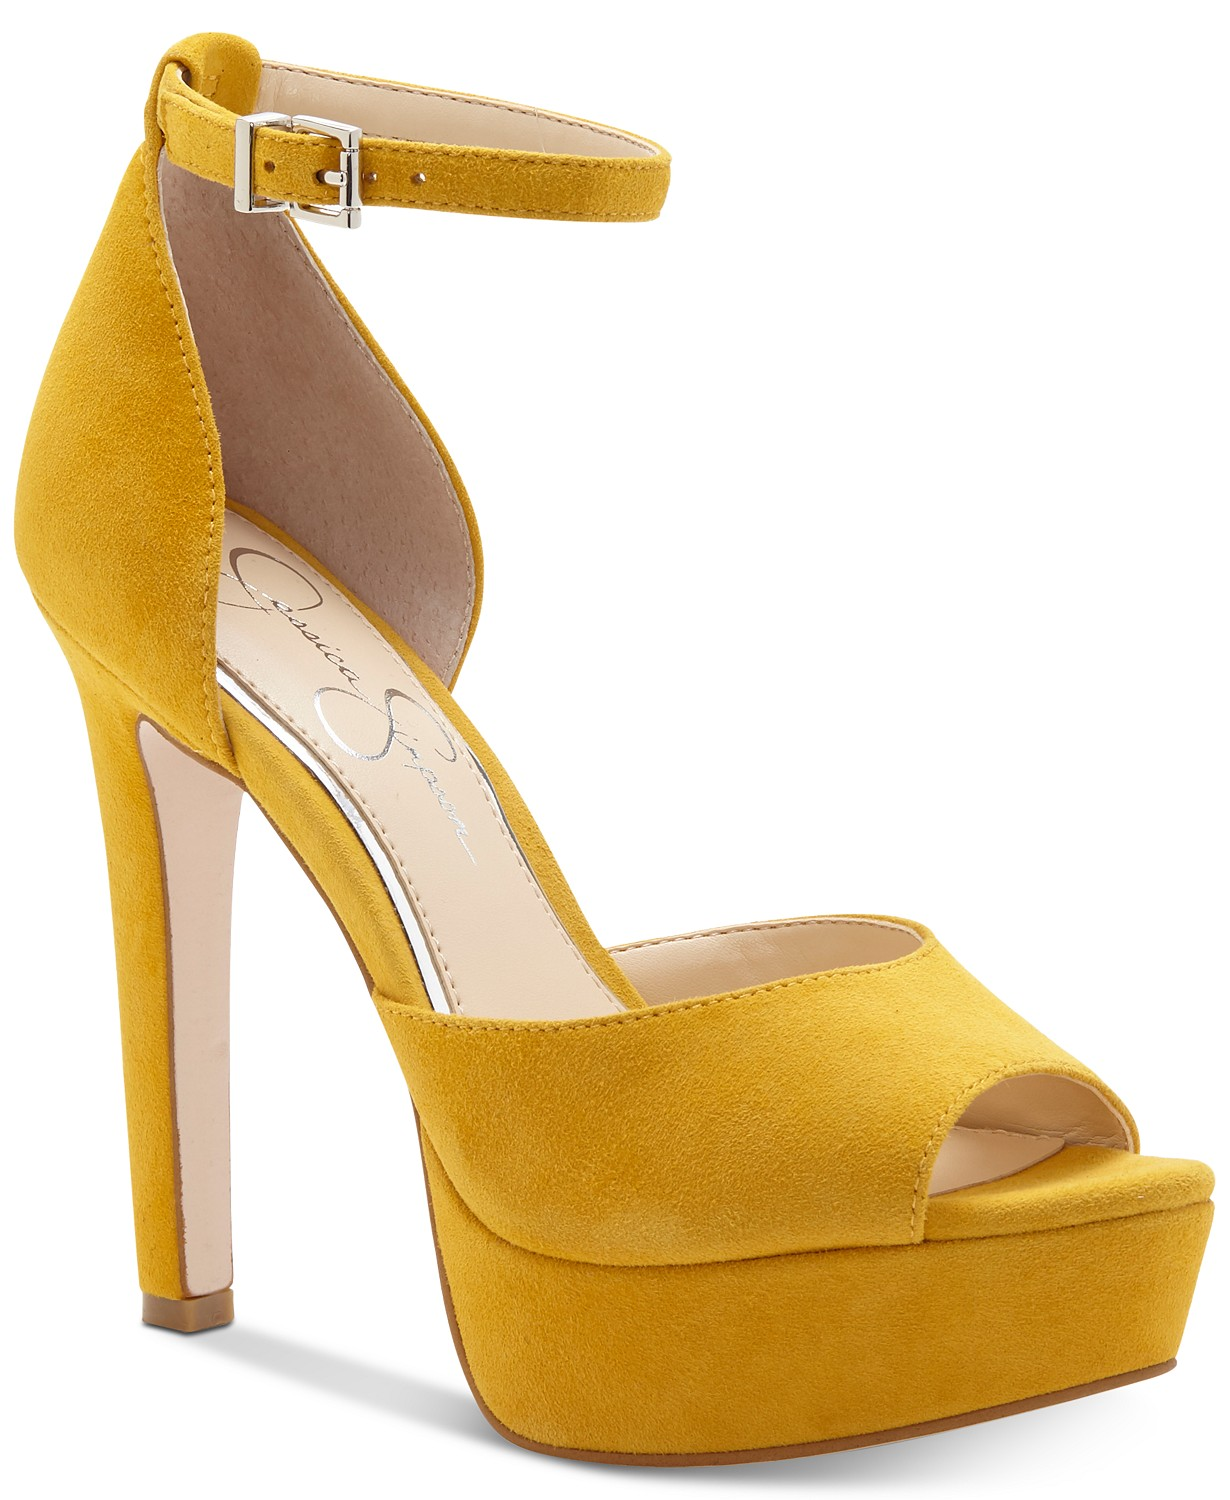 Jessica-Simpson-Womens-Beeya-Peep-Toe-Ankle-Strap-D-orsay-Platform-Pumps thumbnail 2